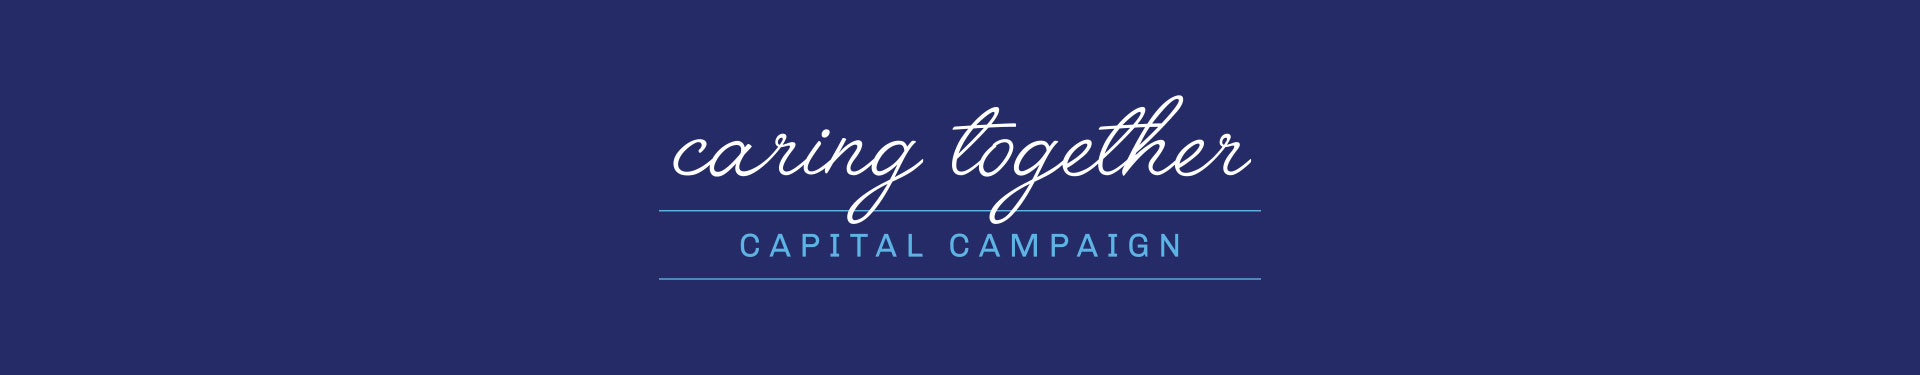 Capital Campaign - Caring Together